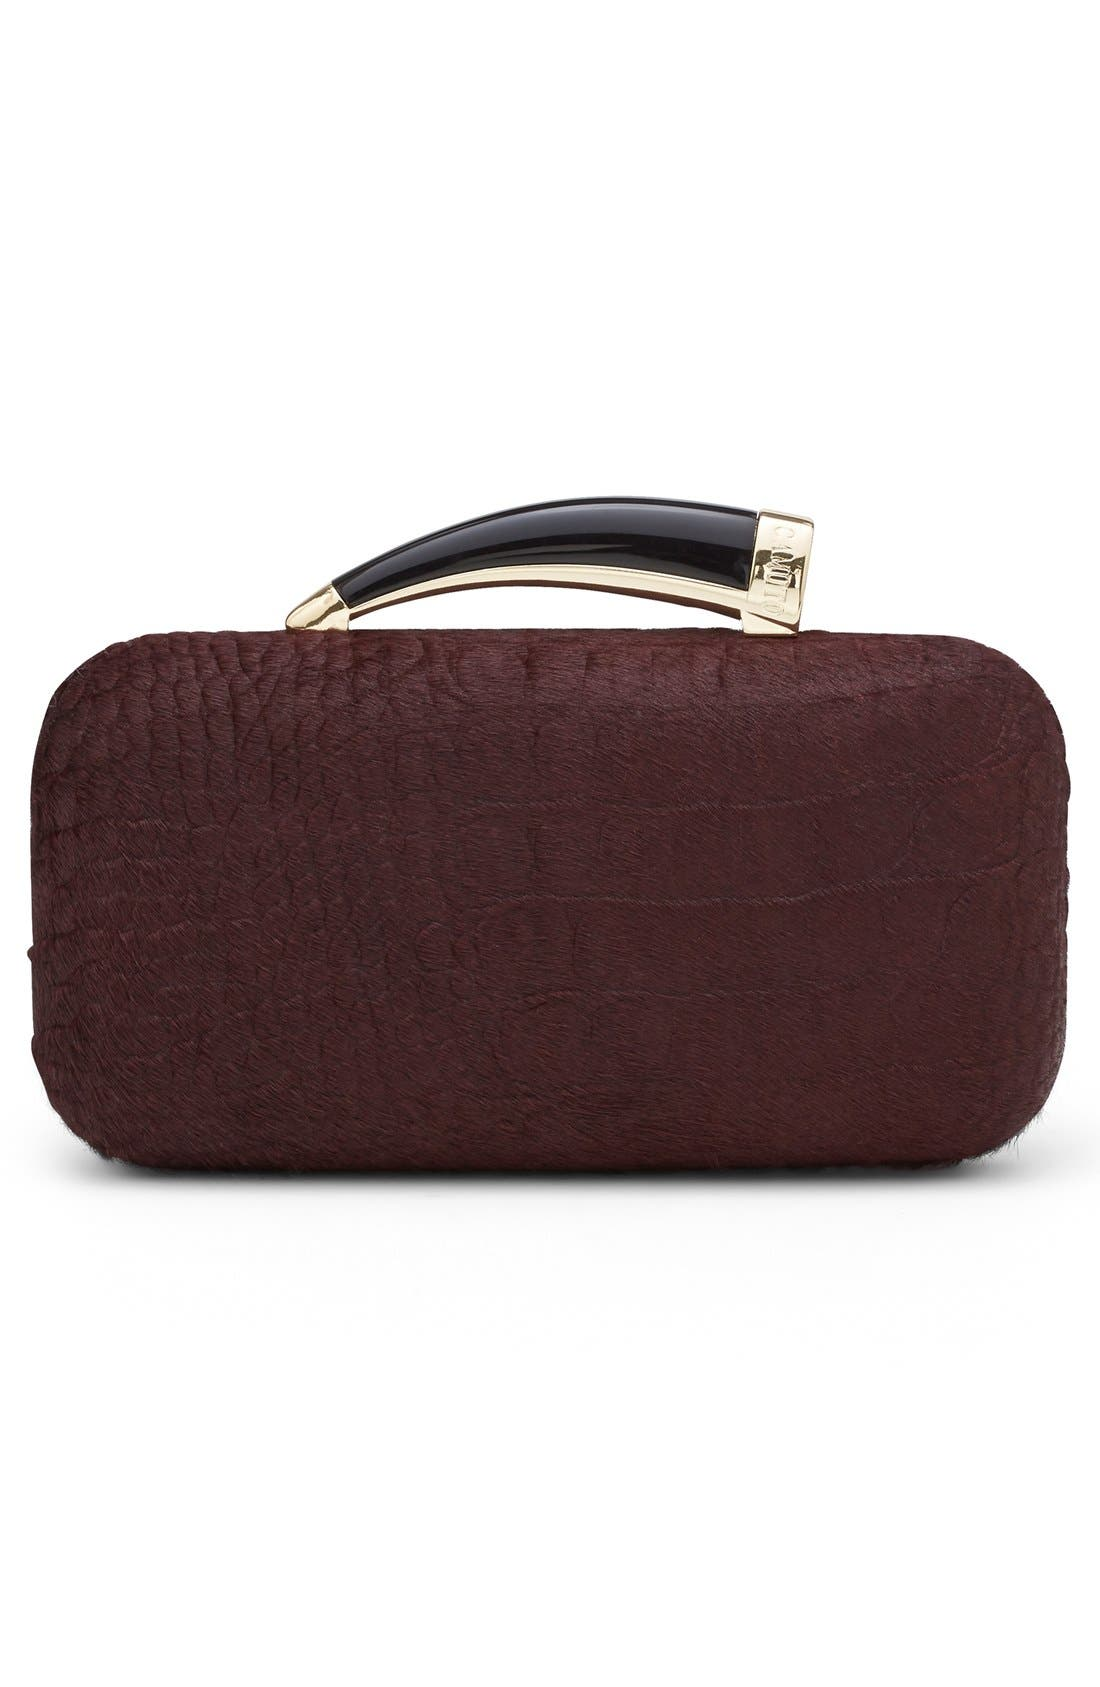 Alternate Image 2  - Vince Camuto 'Horn' Clutch